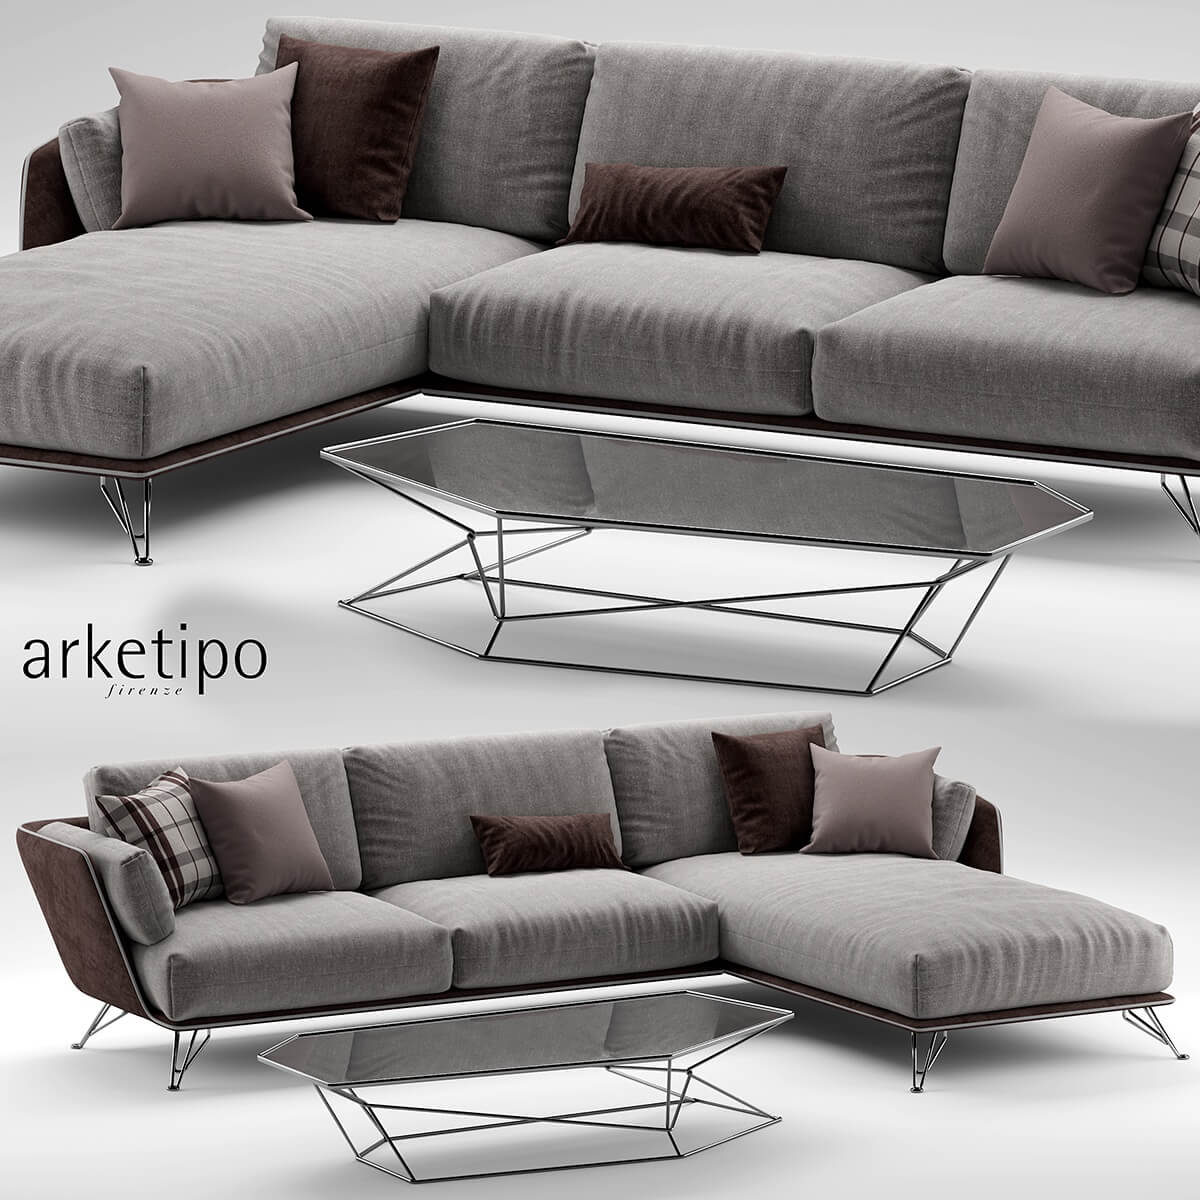 Arketipo Morrison Sofa 2 3d Model For Download Cgsouq Com